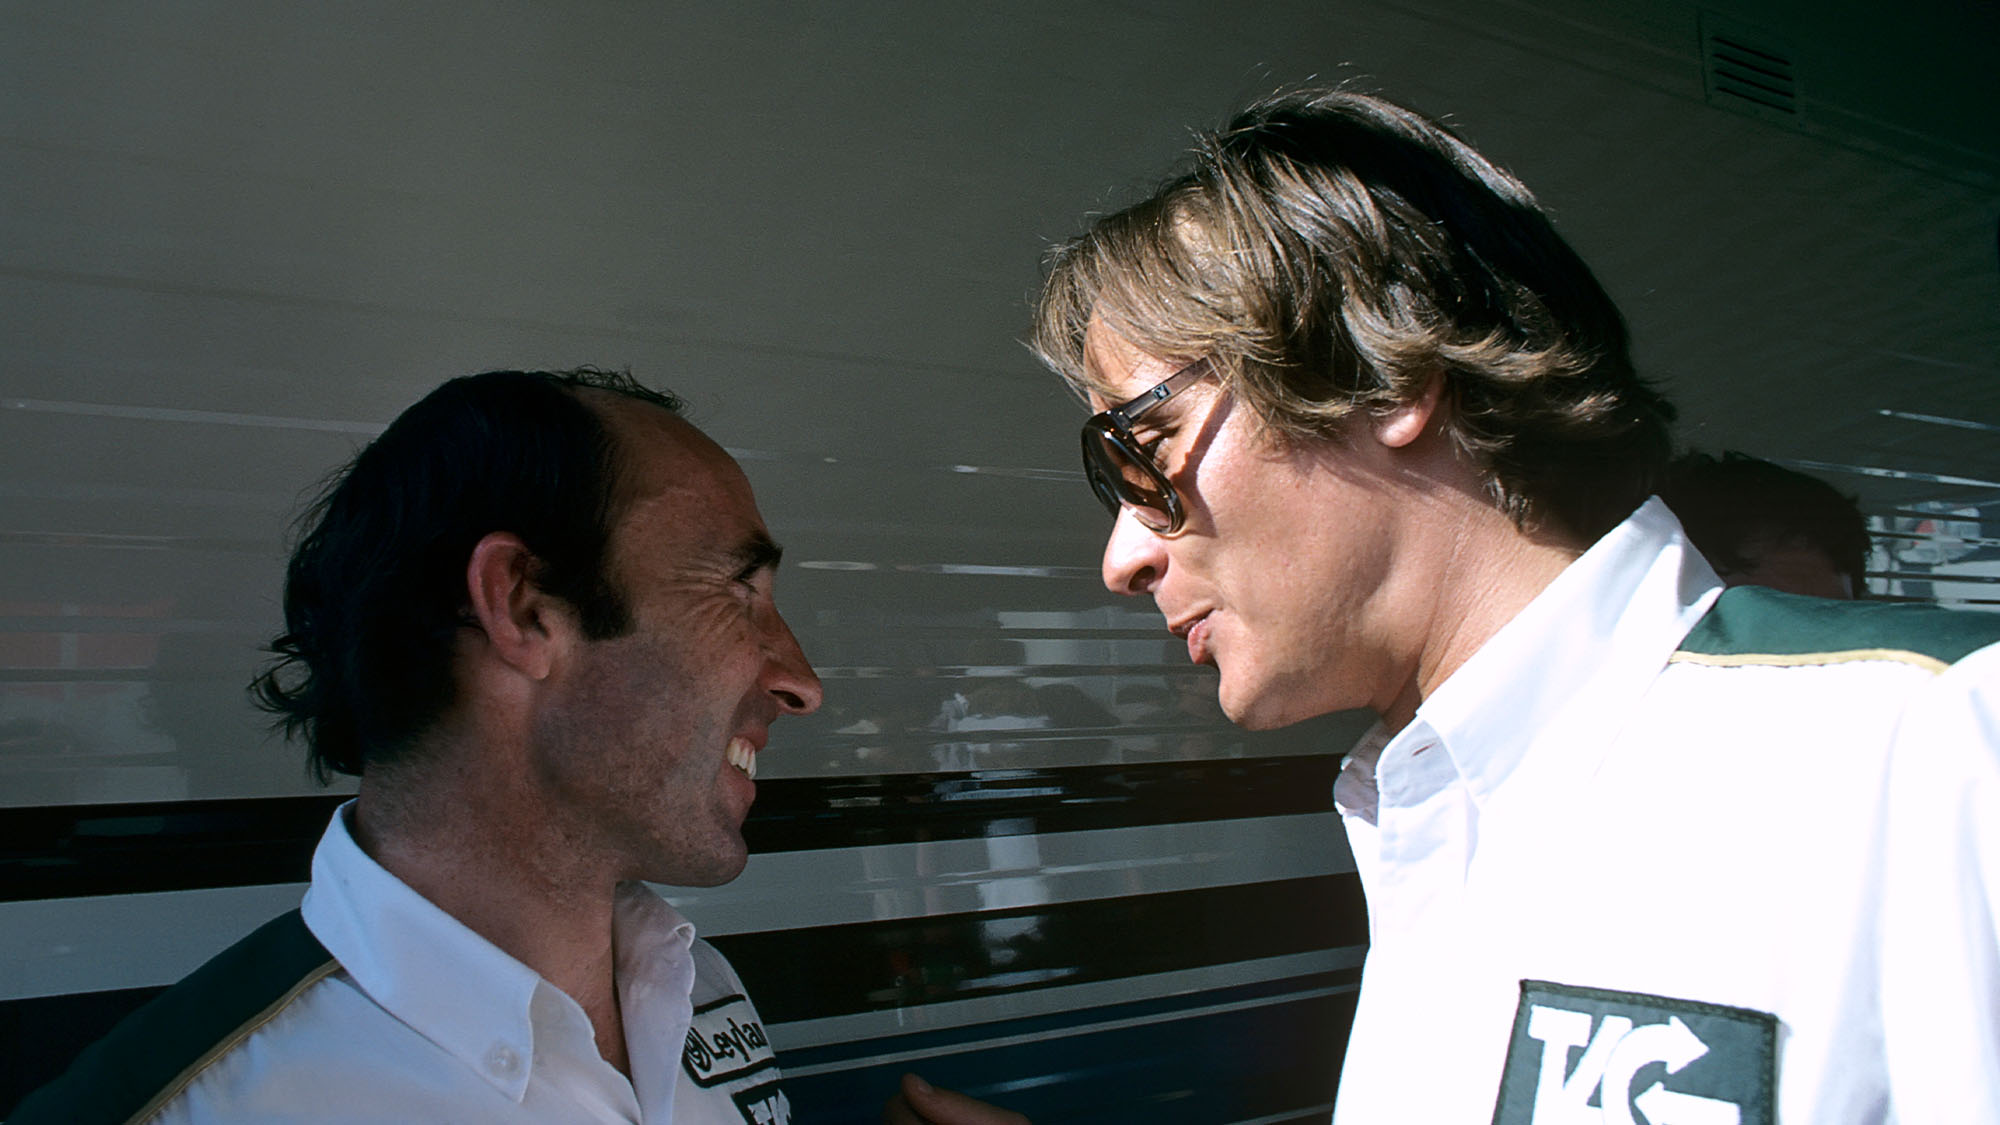 Frank Williams, Mansour Ojjeh, Grand Prix of Canada, Circuit Gilles Villeneuve, 28 September 1980. Frank Williams and TAG president Mansour Ojjeh. (Photo by Paul-Henri Cahier/Getty Images)